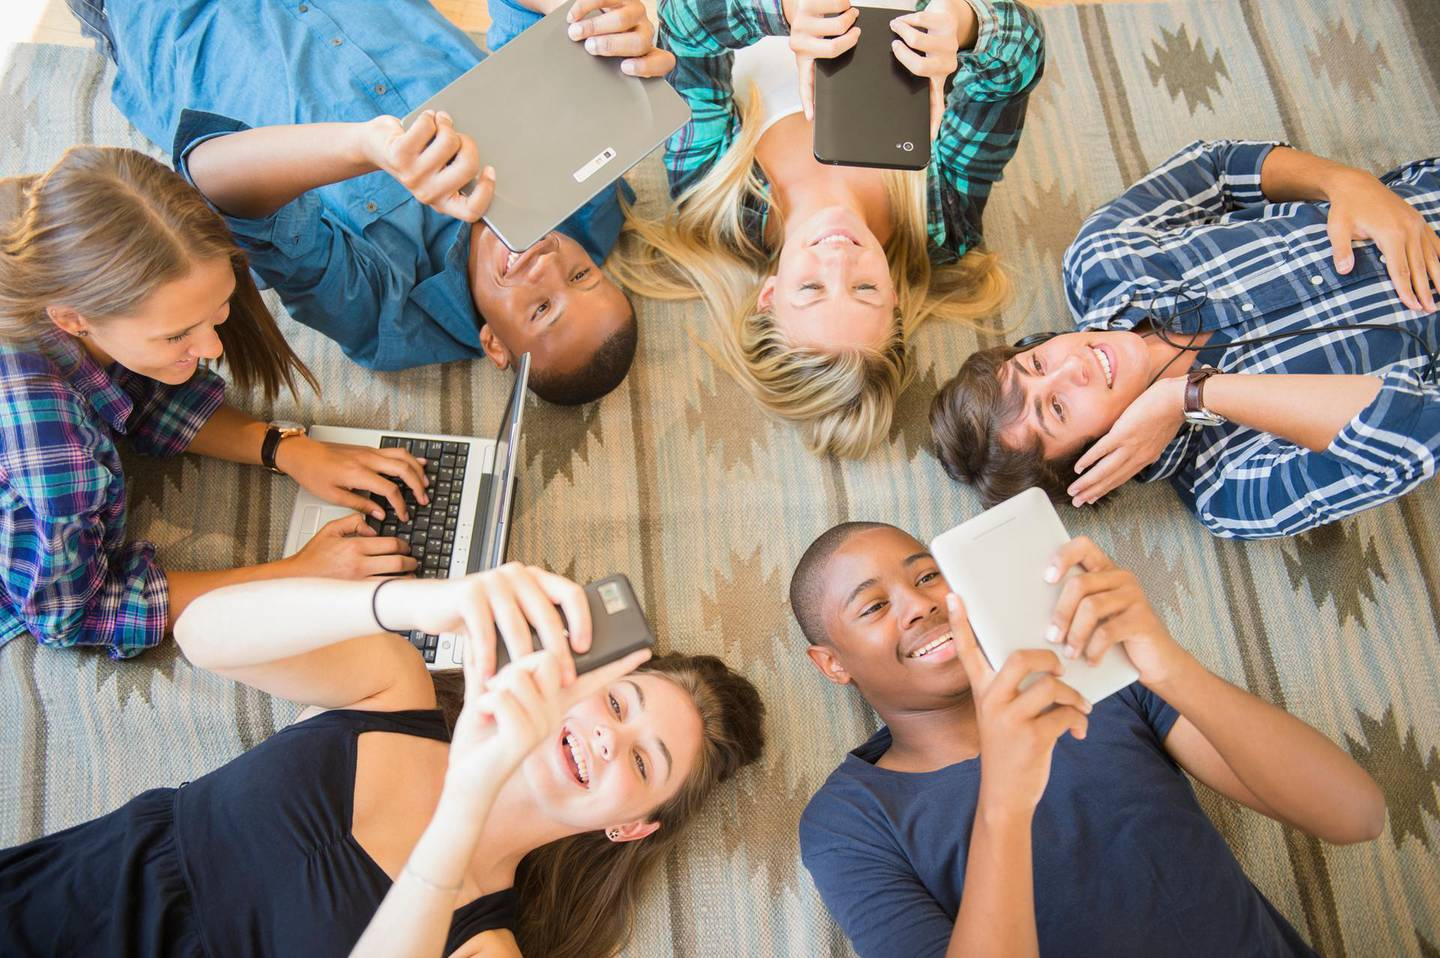 Teenagers laying on floor using technology. Getty Images